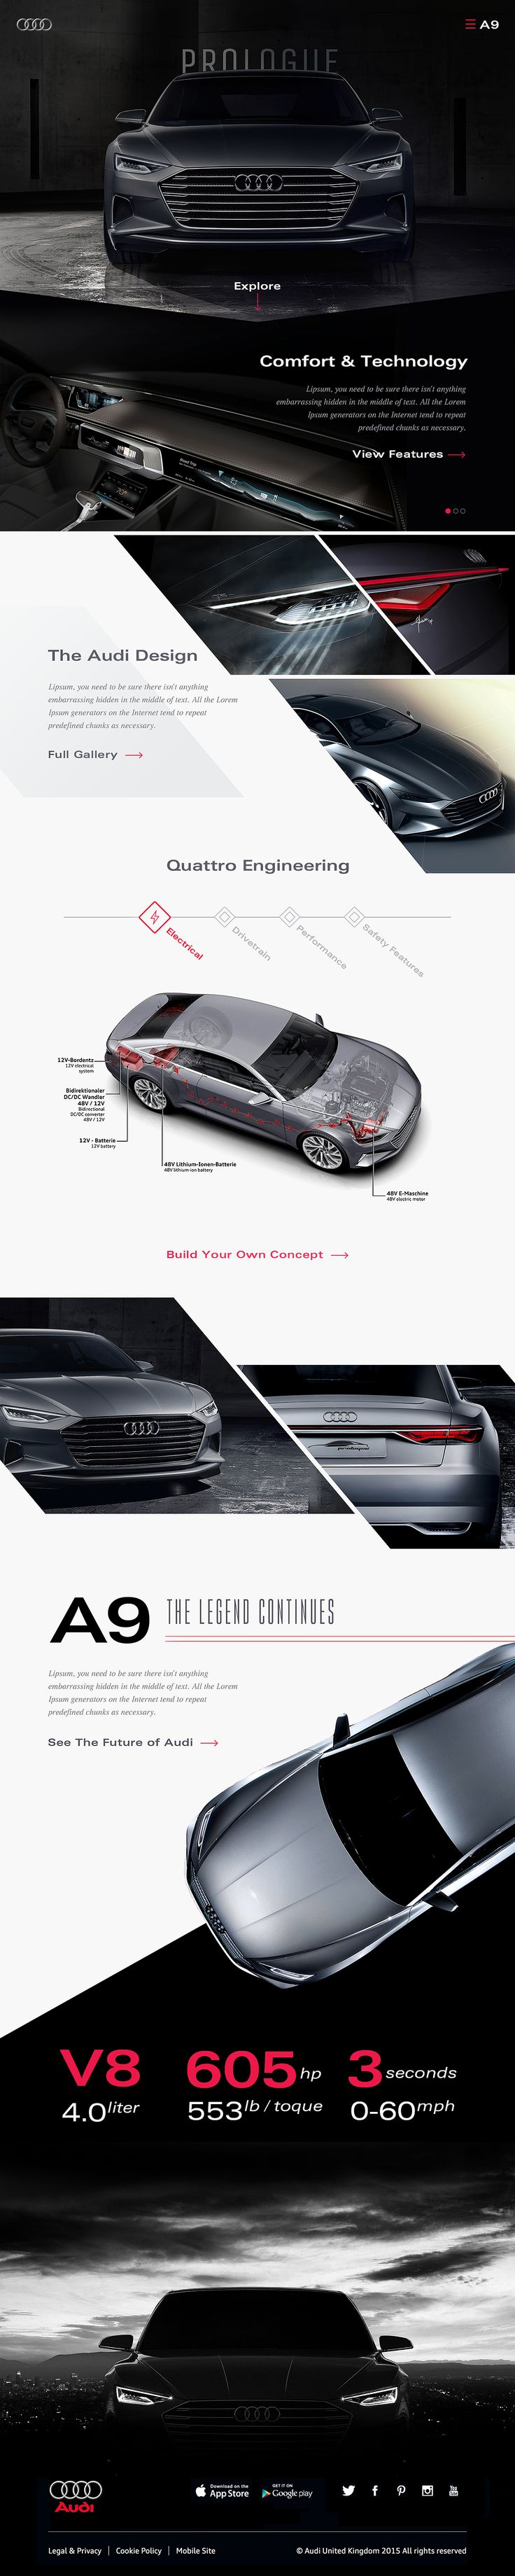 Audi_Prologue_1200